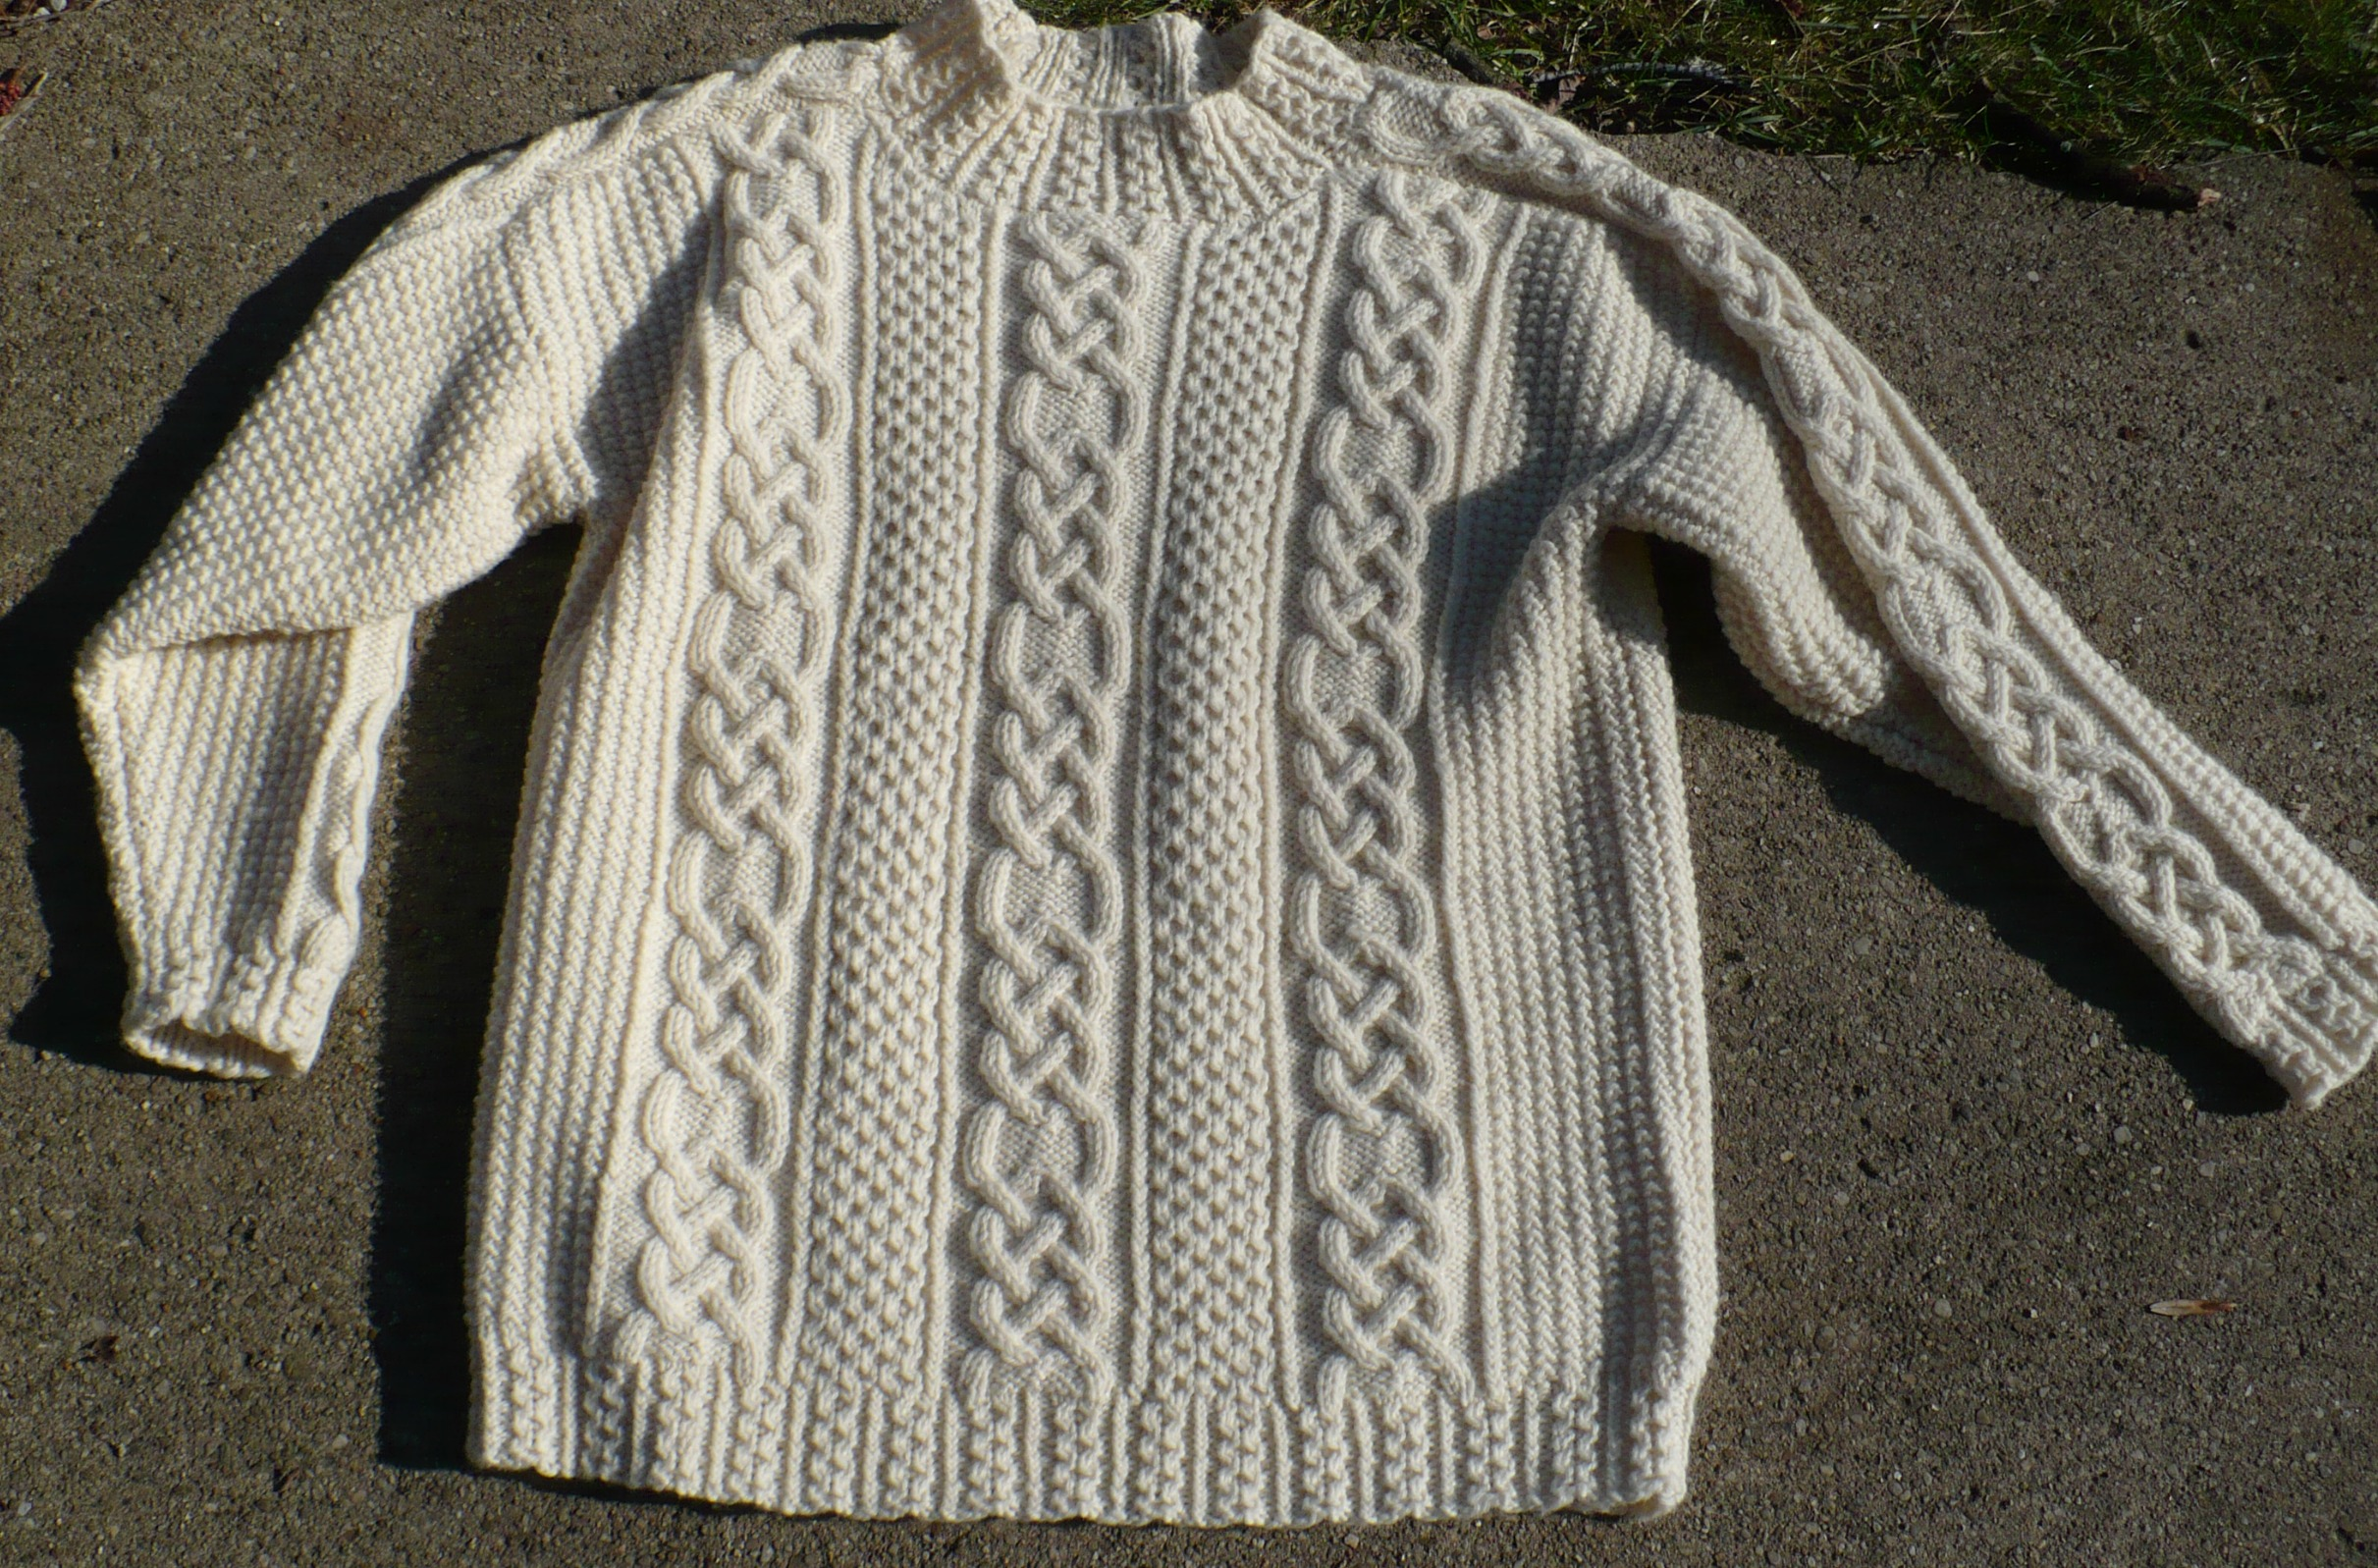 Knitting Patterns Irish Fisherman Sweaters : Handmade Irish Fishermans Sweater